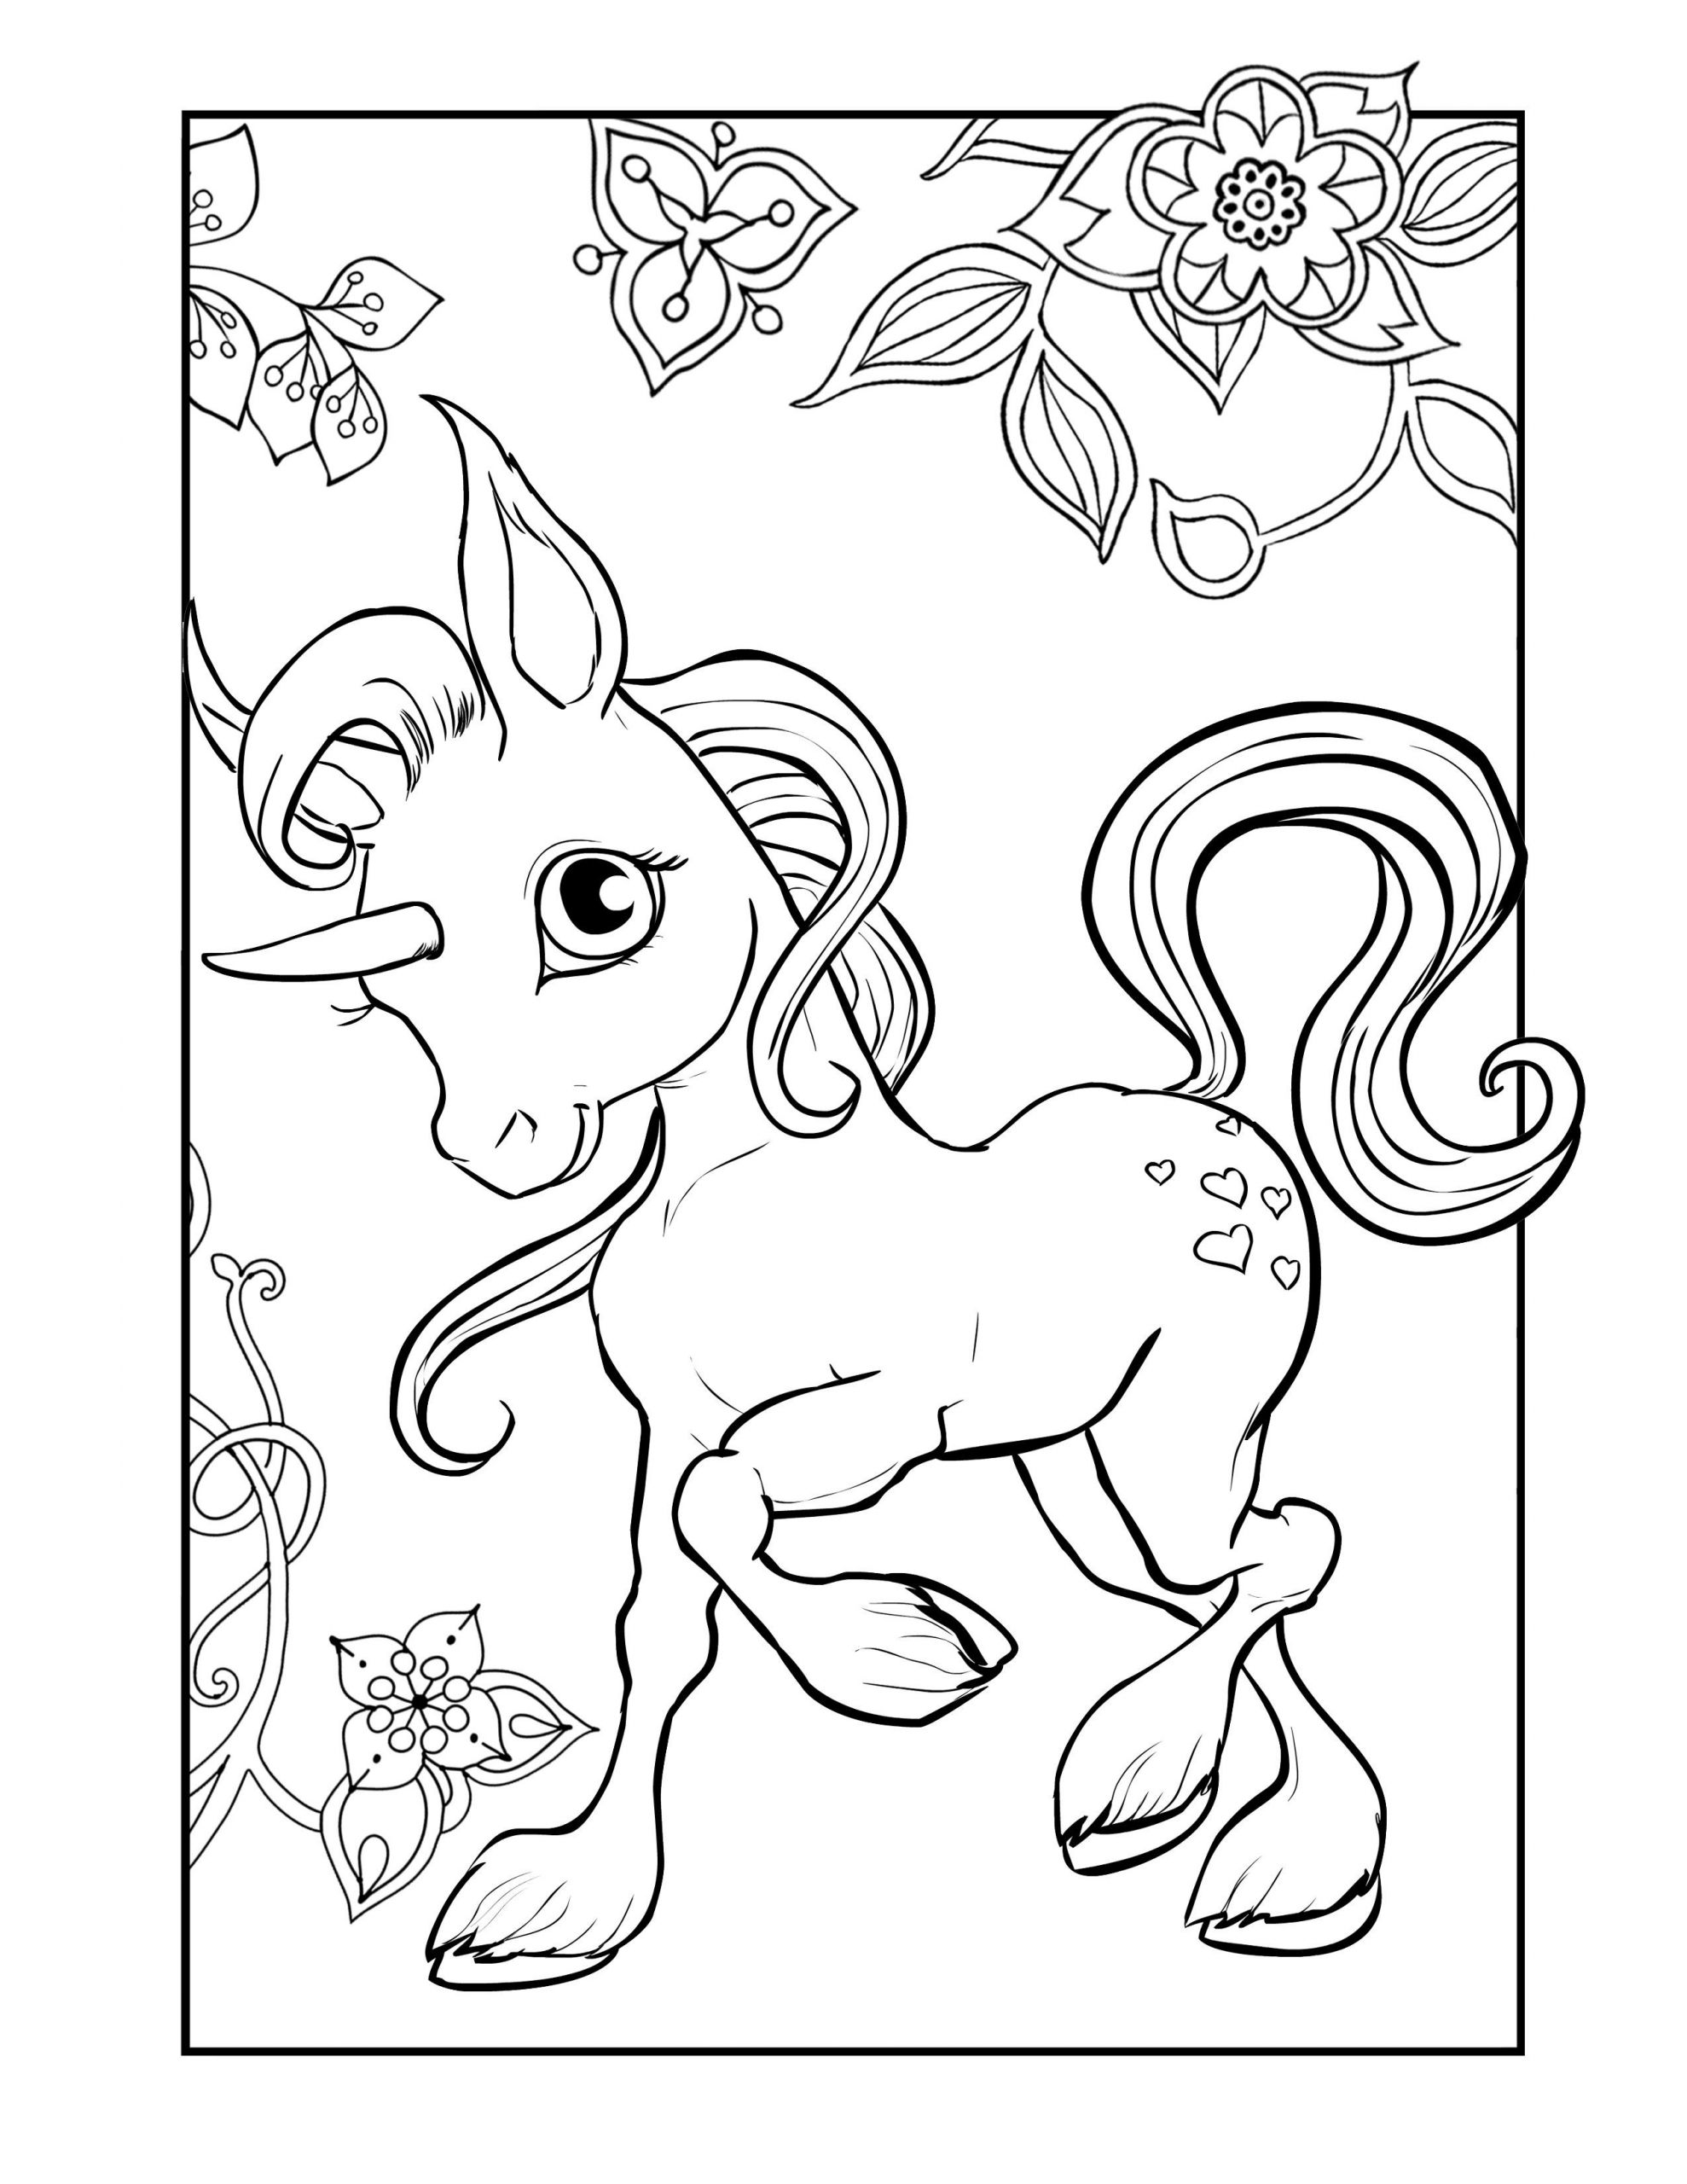 coloring for unicorn a magical unicorn a coloring page taianomainen for coloring unicorn